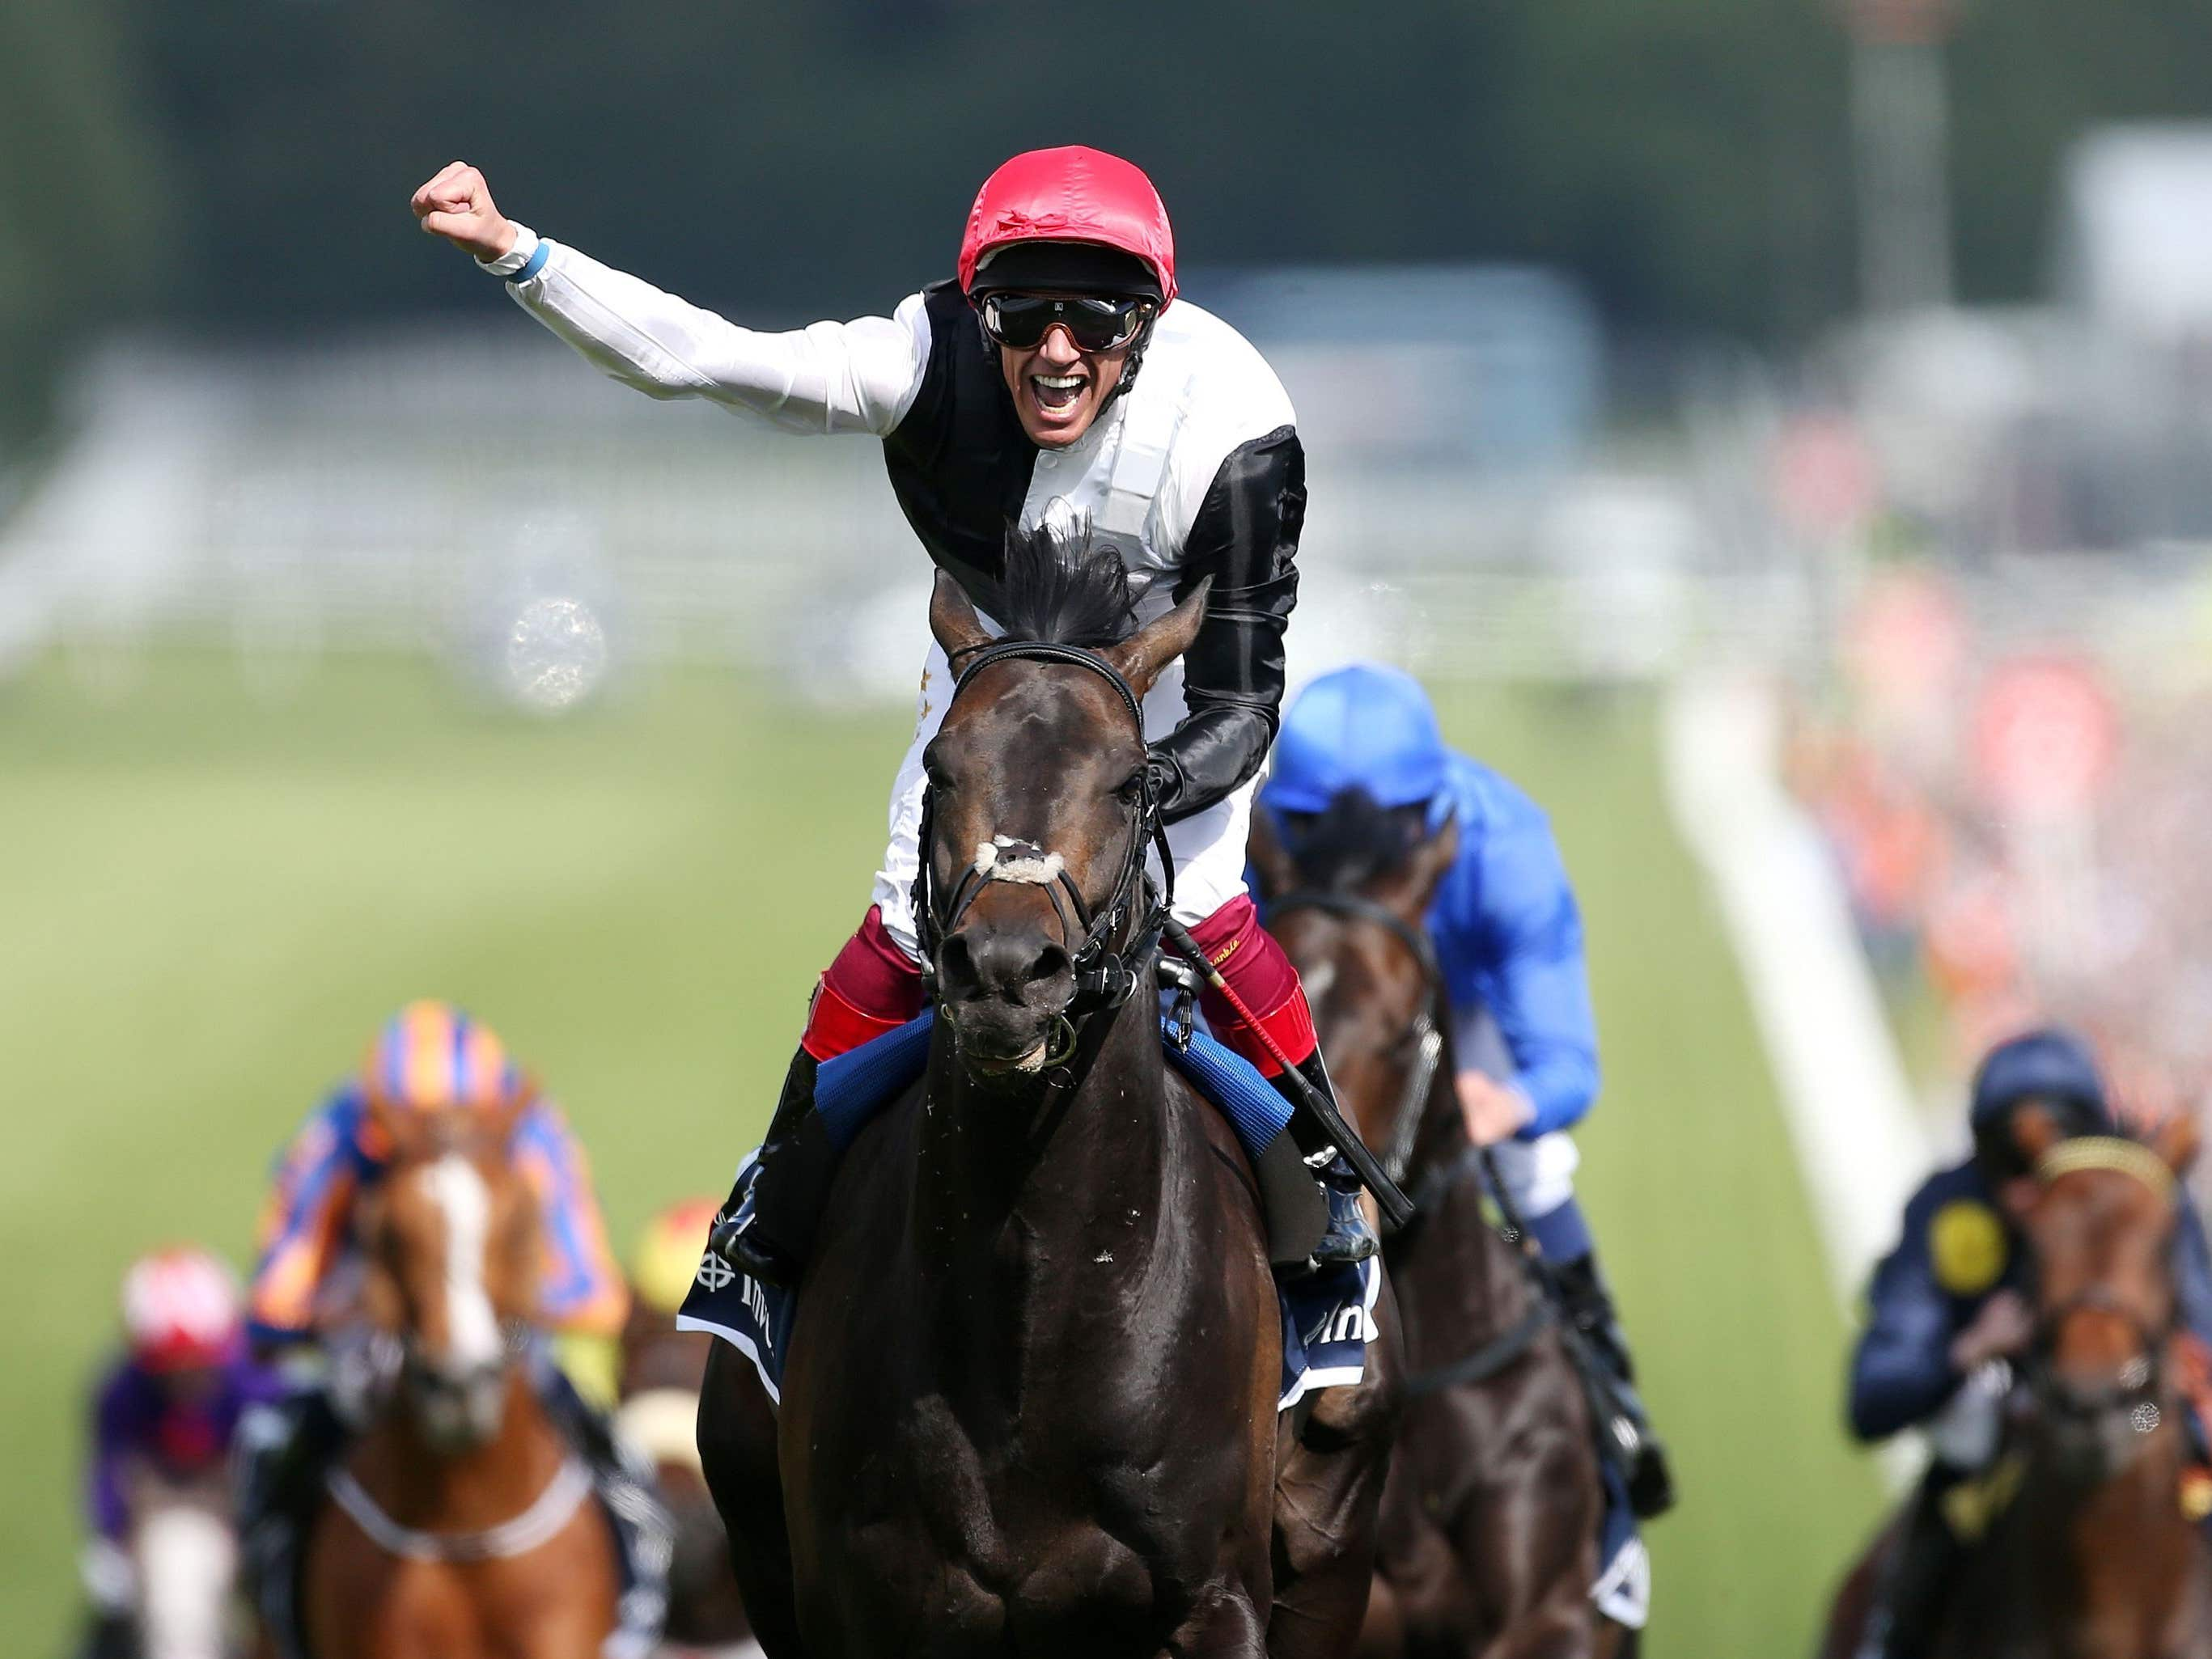 Frankie Dettori celebrates his victory on Golden Horn in the Investec Derby (David Davies/PA)